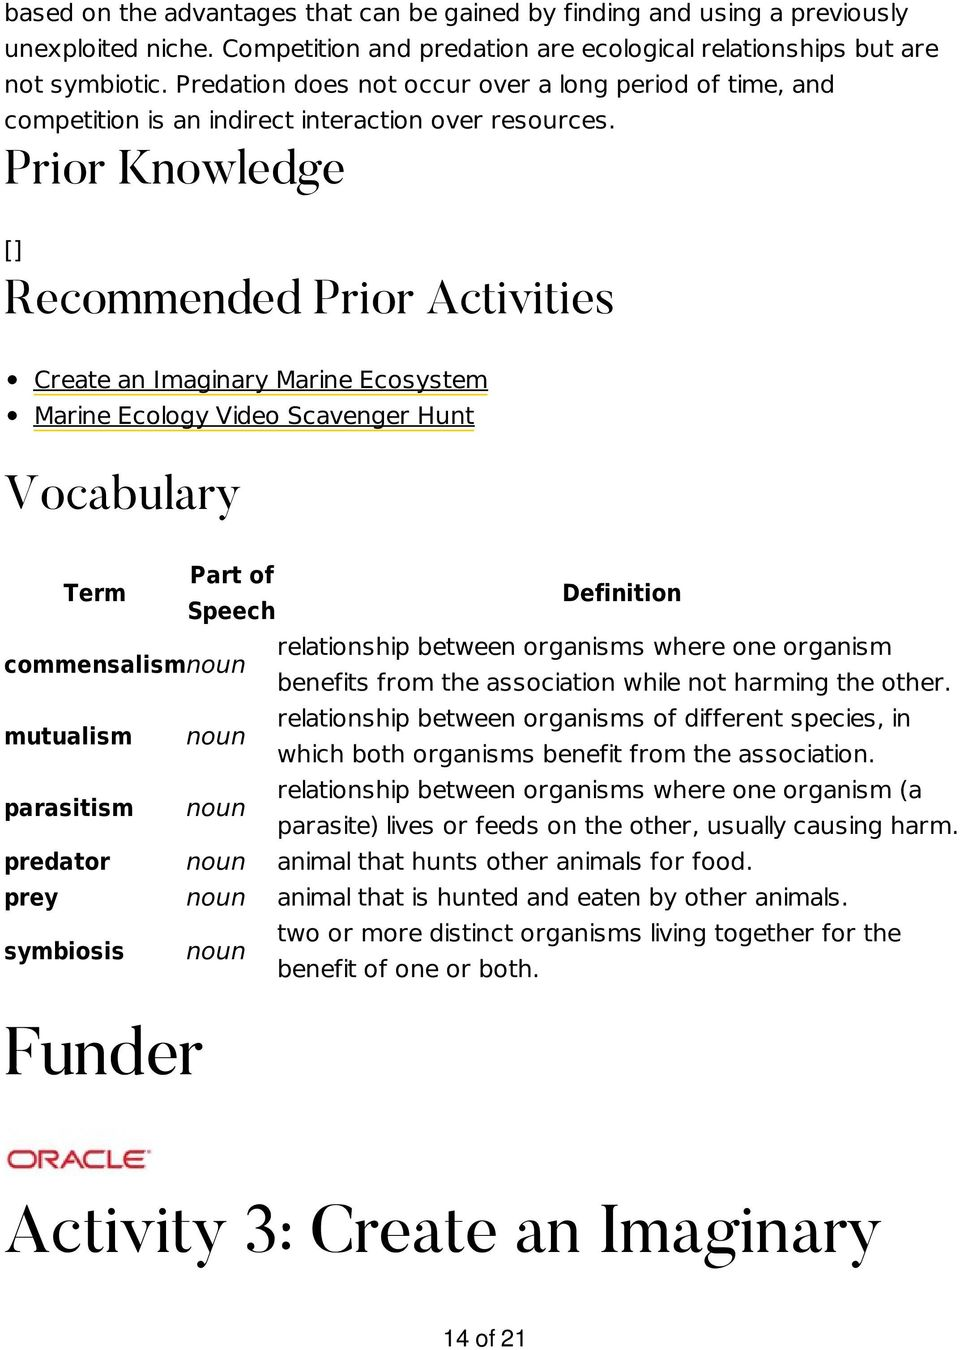 Prior Knowledge [] Recommended Prior Activities Create an Imaginary Marine Ecosystem Marine Ecology Video Scavenger Hunt Vocabulary Term Part of Speech Definition commensalismnoun relationship